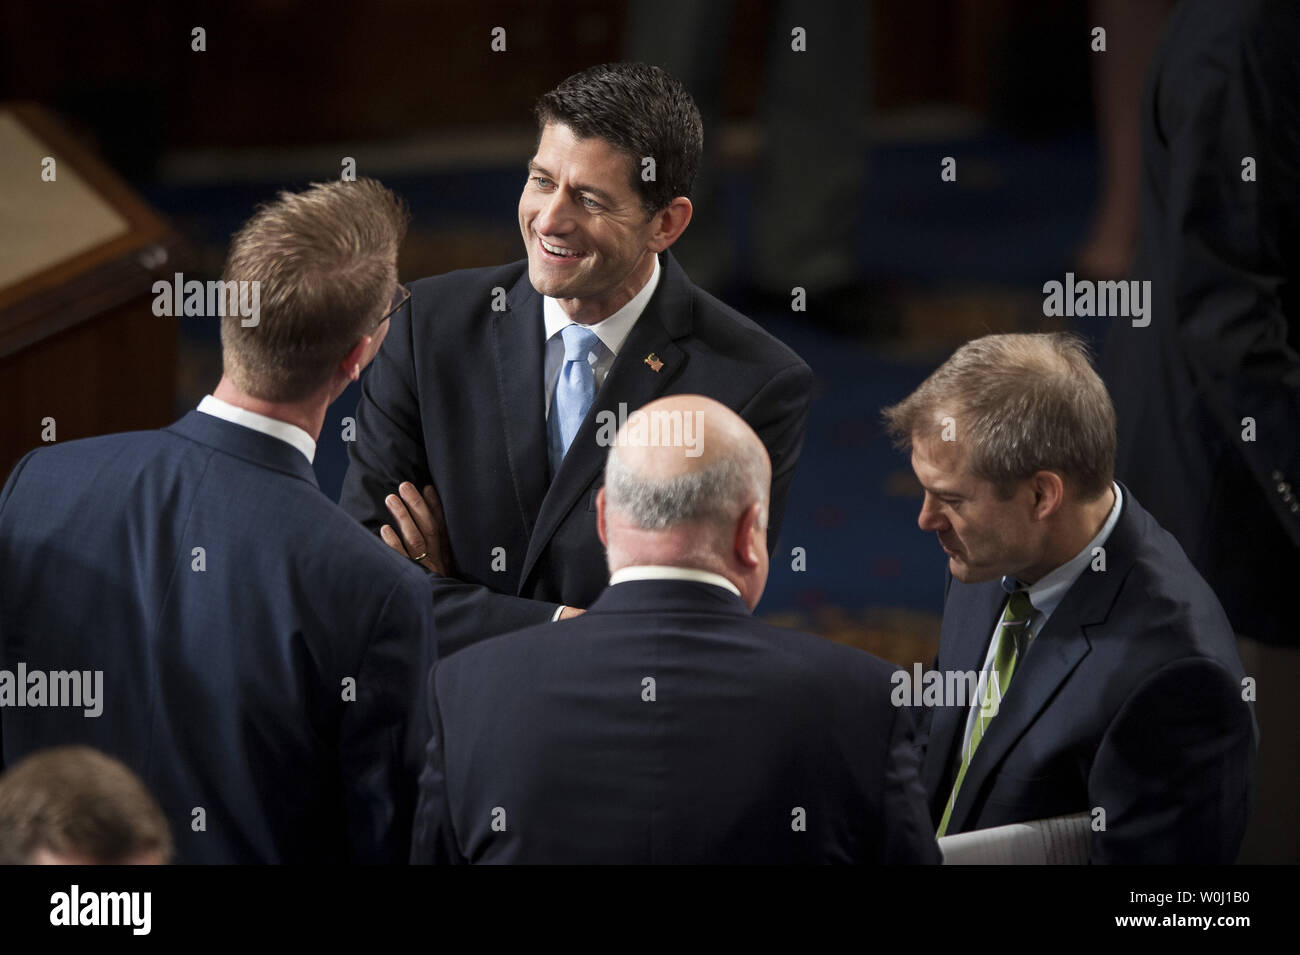 Republican caucus nominee for Speaker of the House, Rep. Paul Ryan (R-WI) is greeted by fellow Members of Congress on the floor  of the House of Representatives on October 29, 2015 in Washington, D.C.   Earlier, the outgoing Speaker, Rep. John Boehner (R-OH), gave his farewell address to Congress. He is retiring on October 30, 2015. Photo by Pete Marovich/UPI - Stock Image